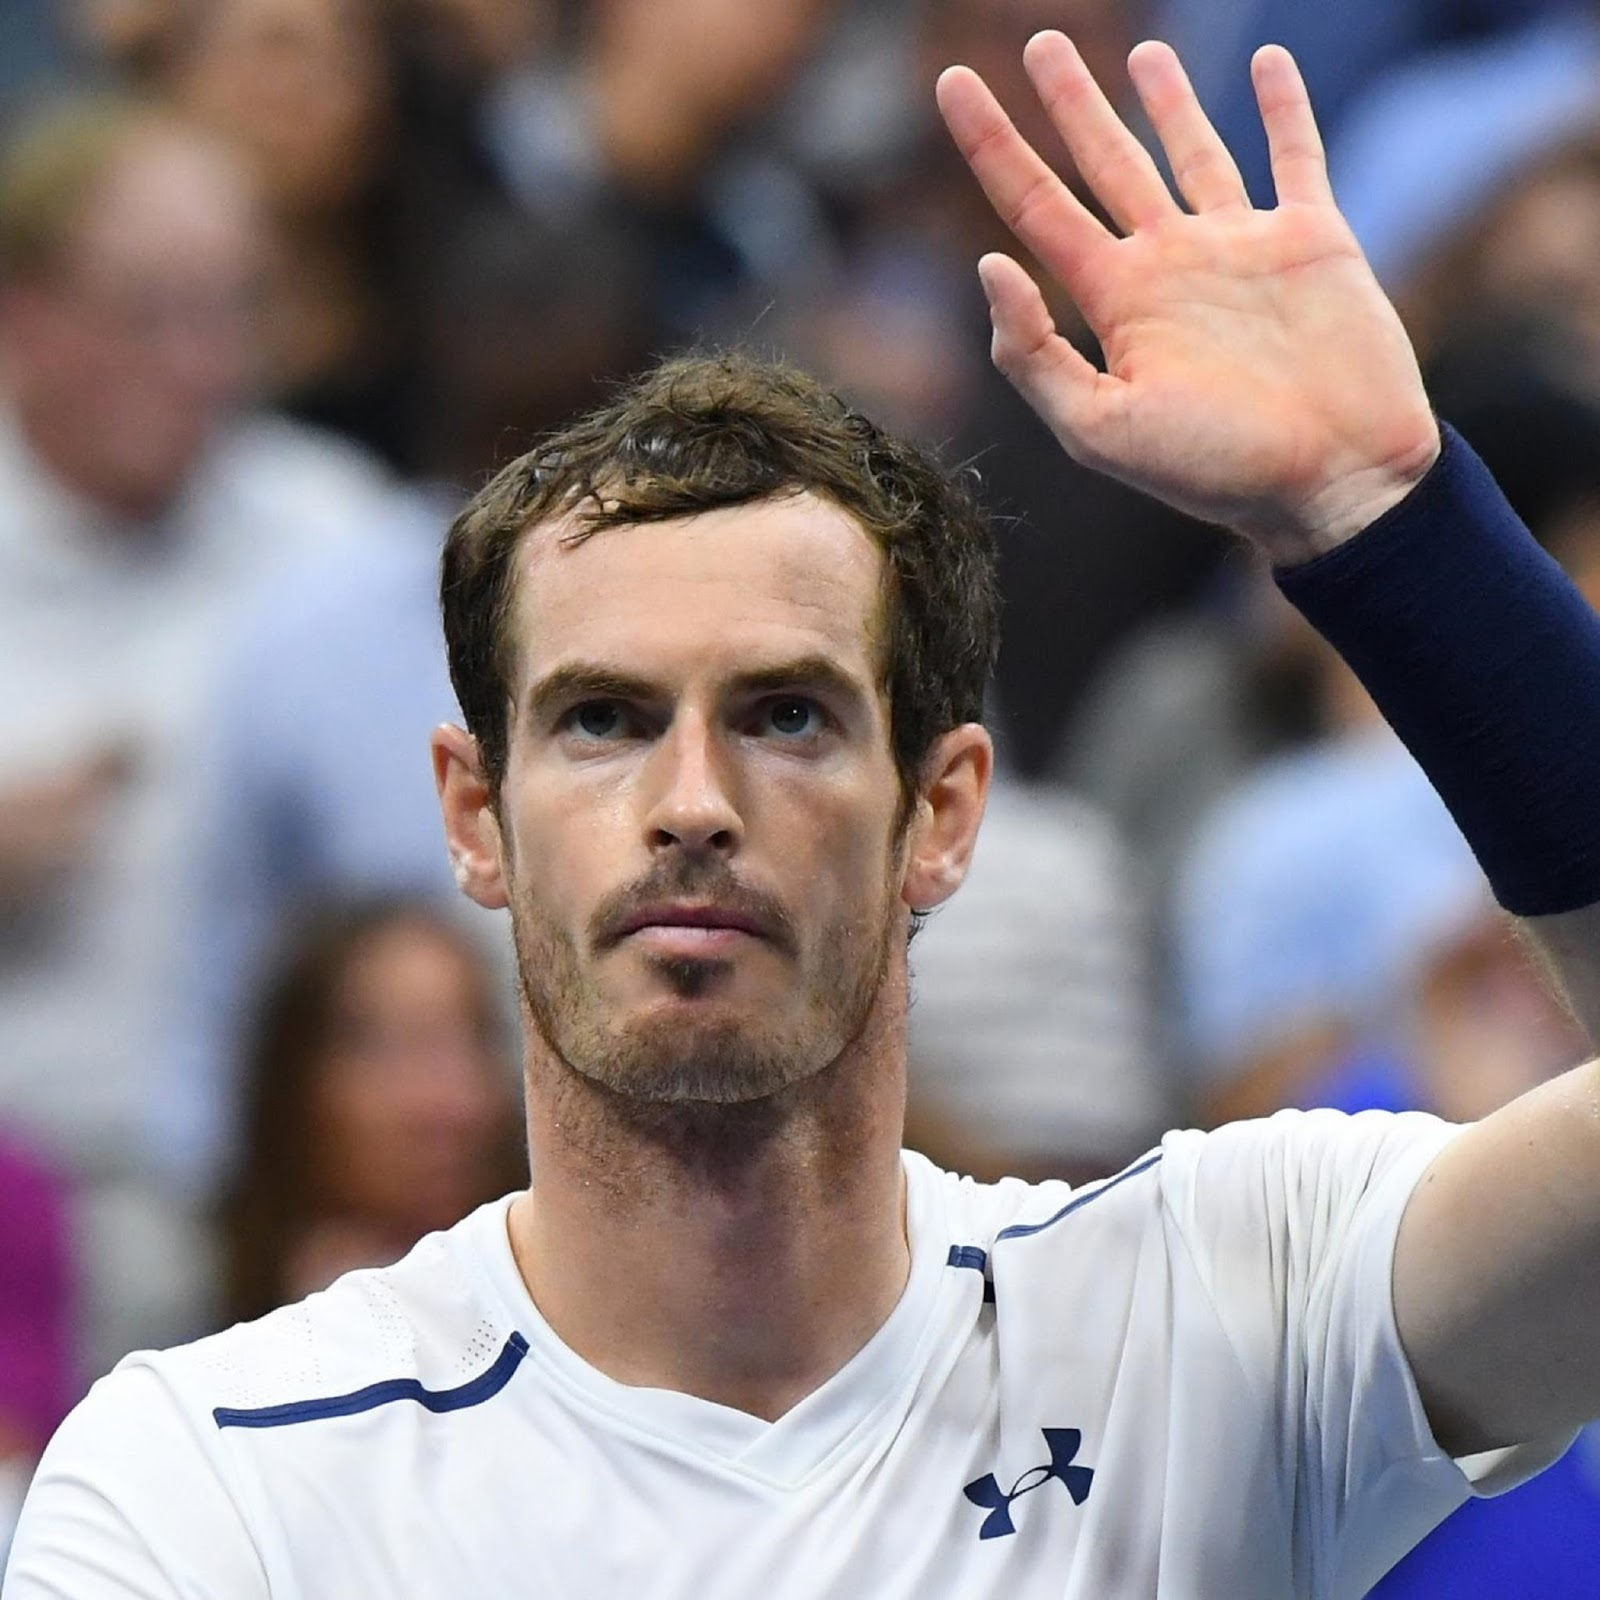 ANDY MURRAY 6